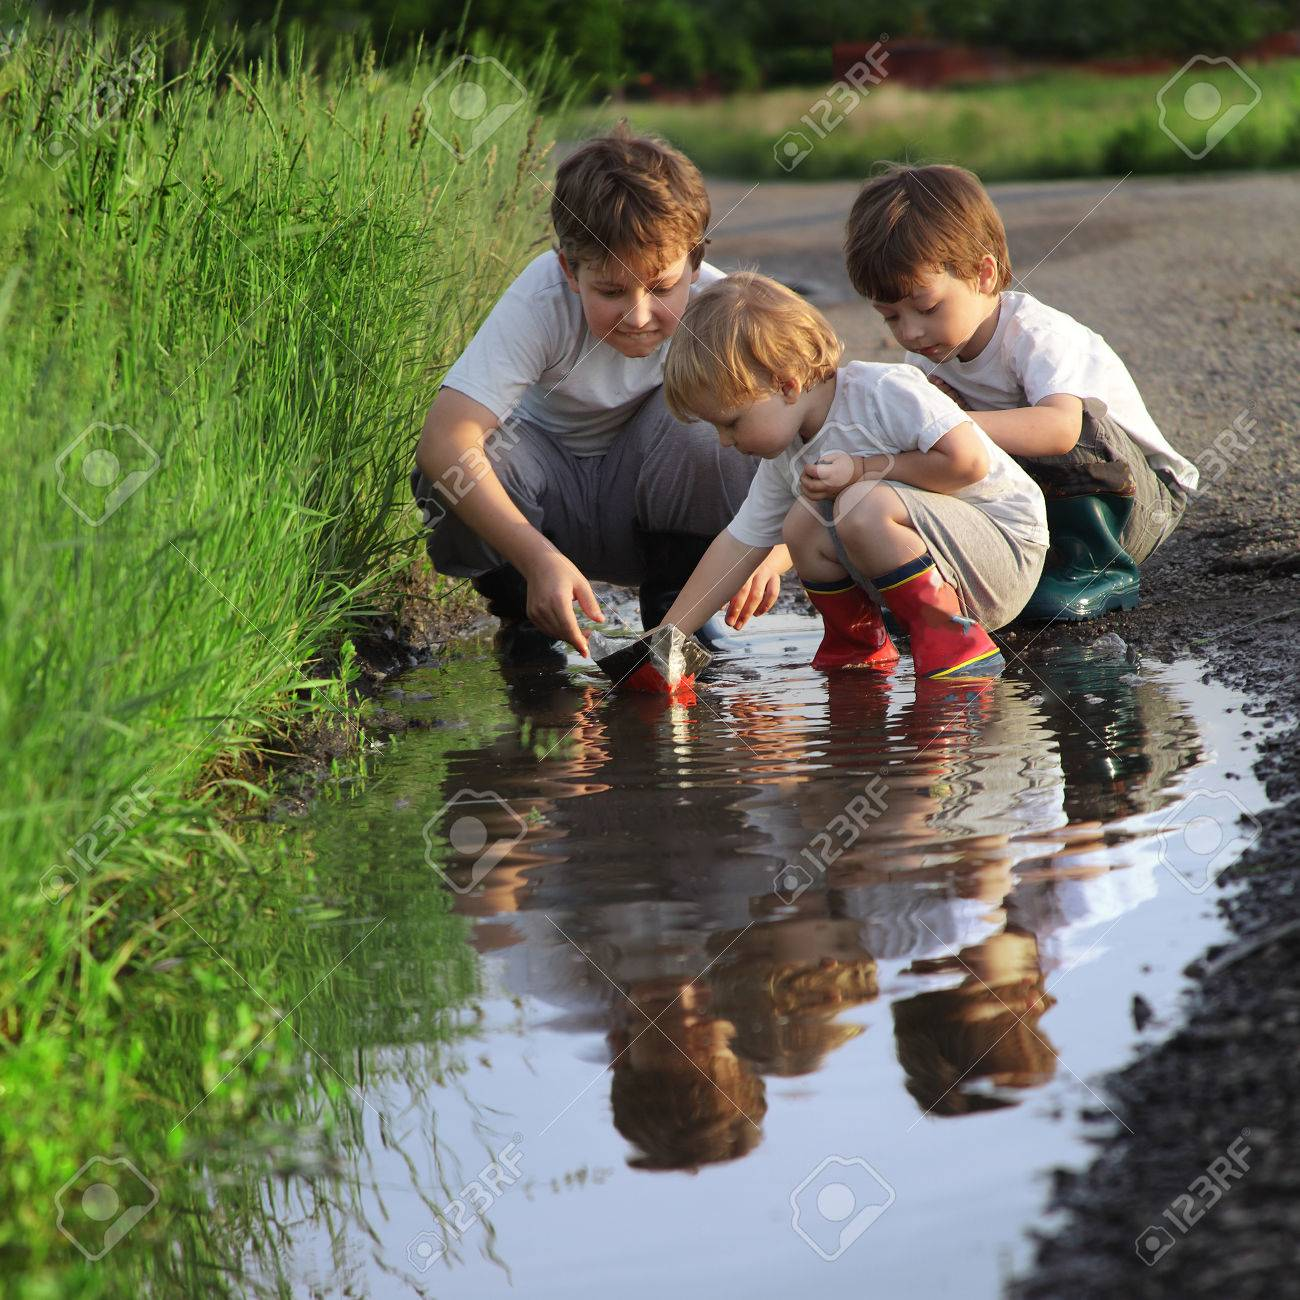 three boy play in puddle - 26035363